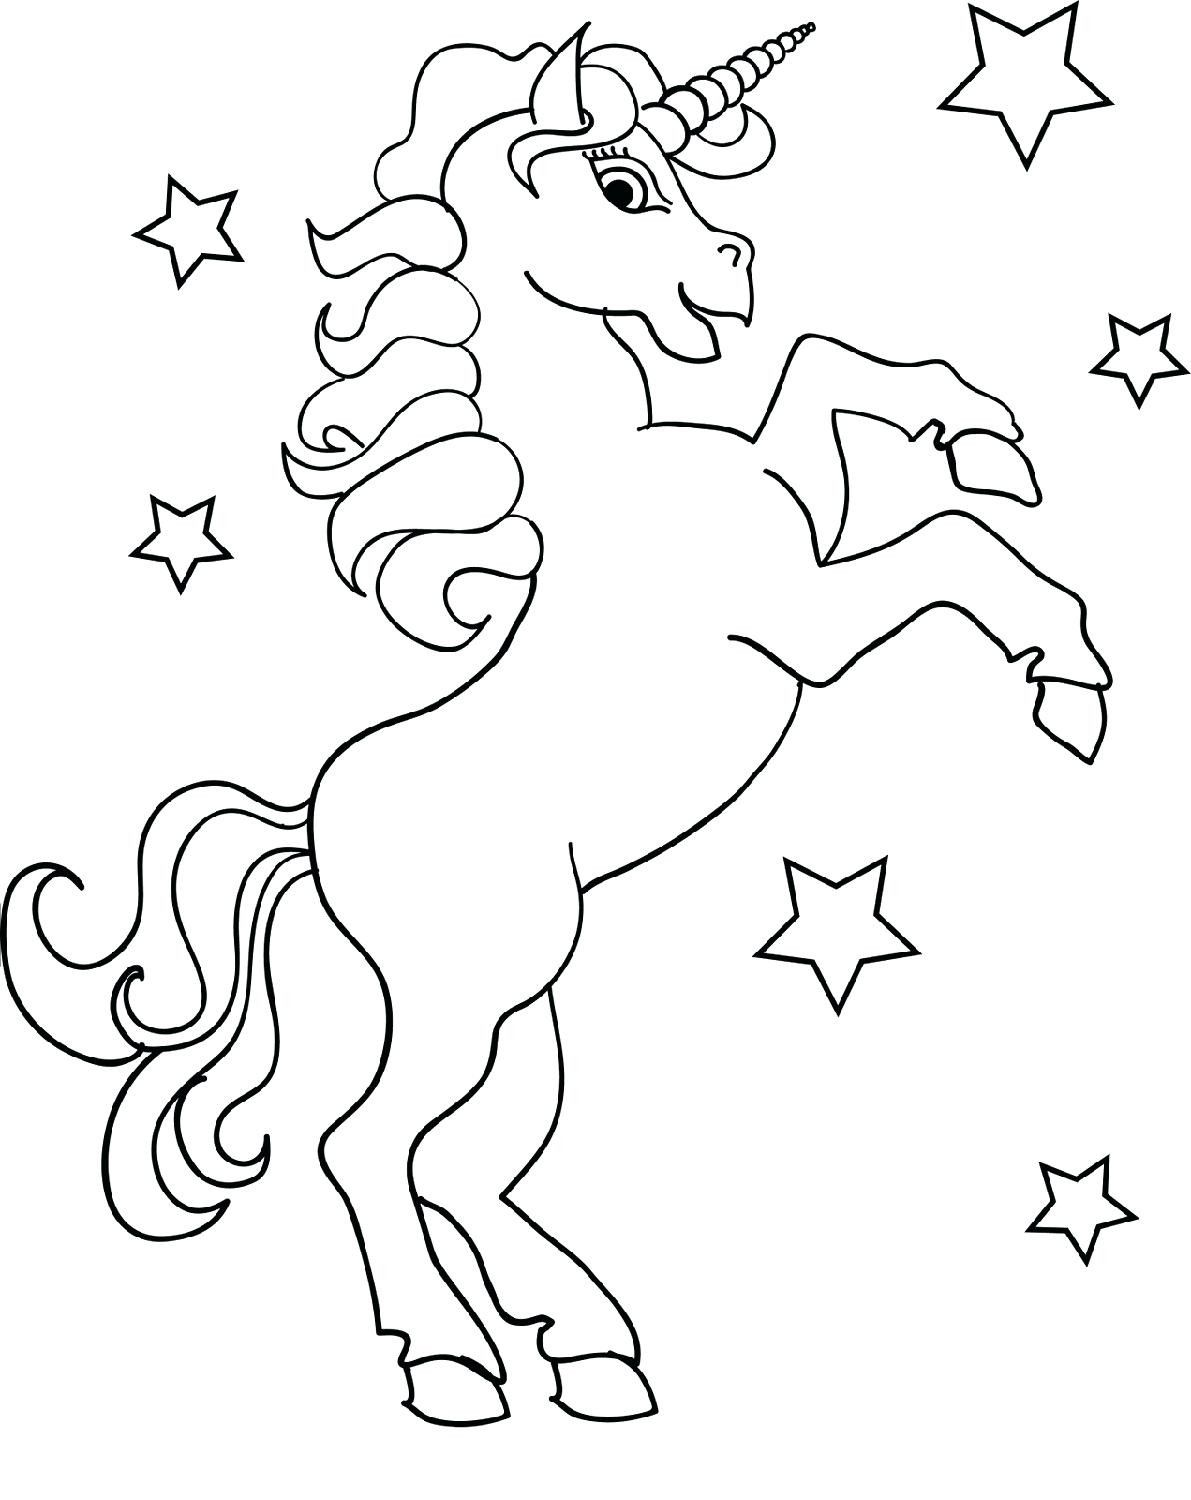 Unicorn Coloring Pages Ideas With Printable Pdf Free Coloring Sheets Unicorn Pictures To Color Free Coloring Pages Horse Coloring Pages